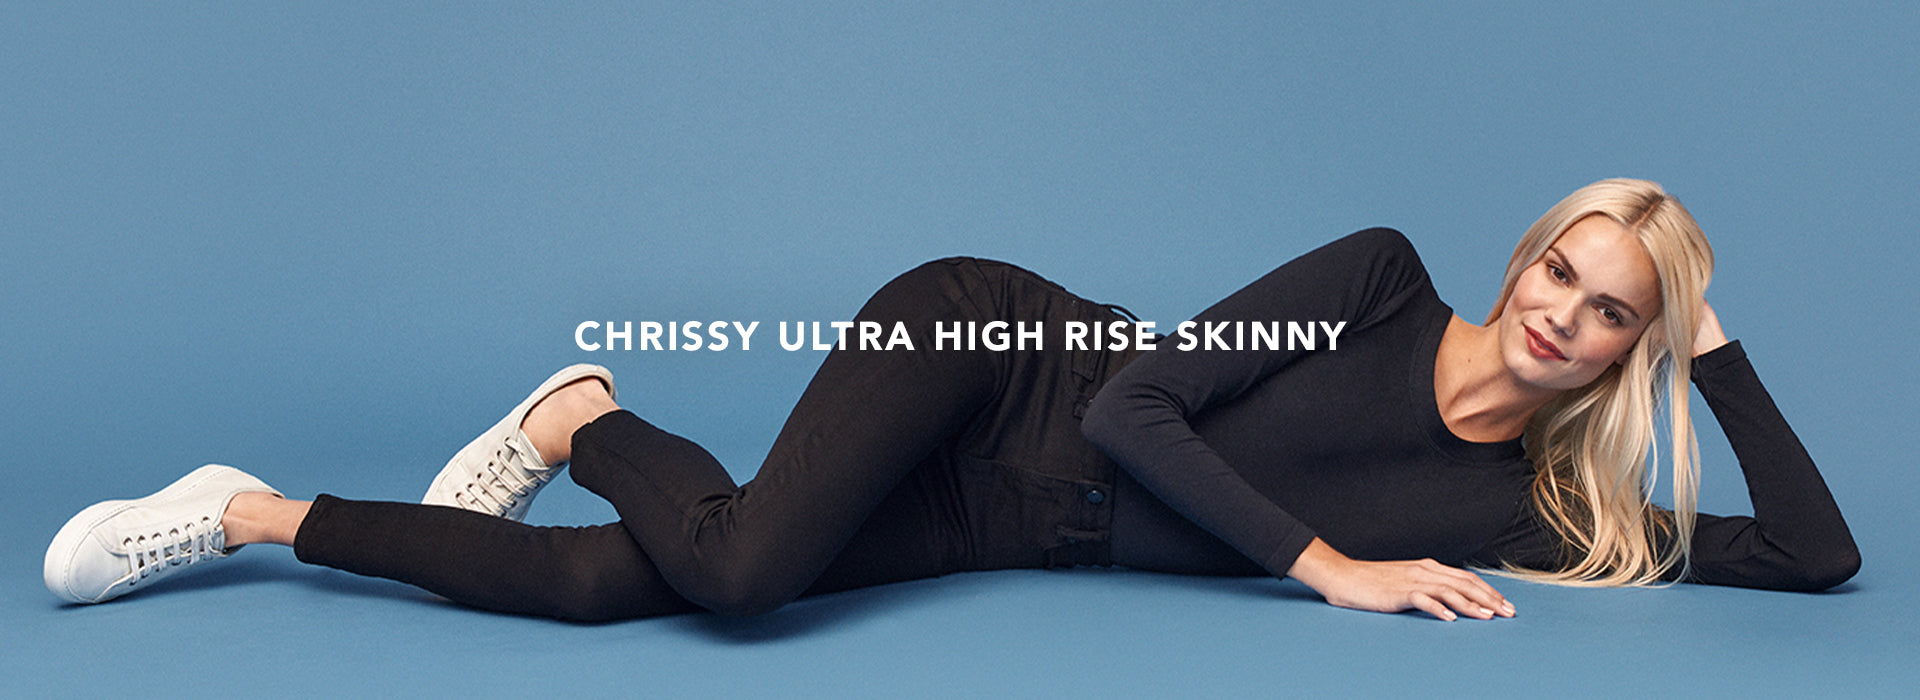 Chrissy Ultra High Rise